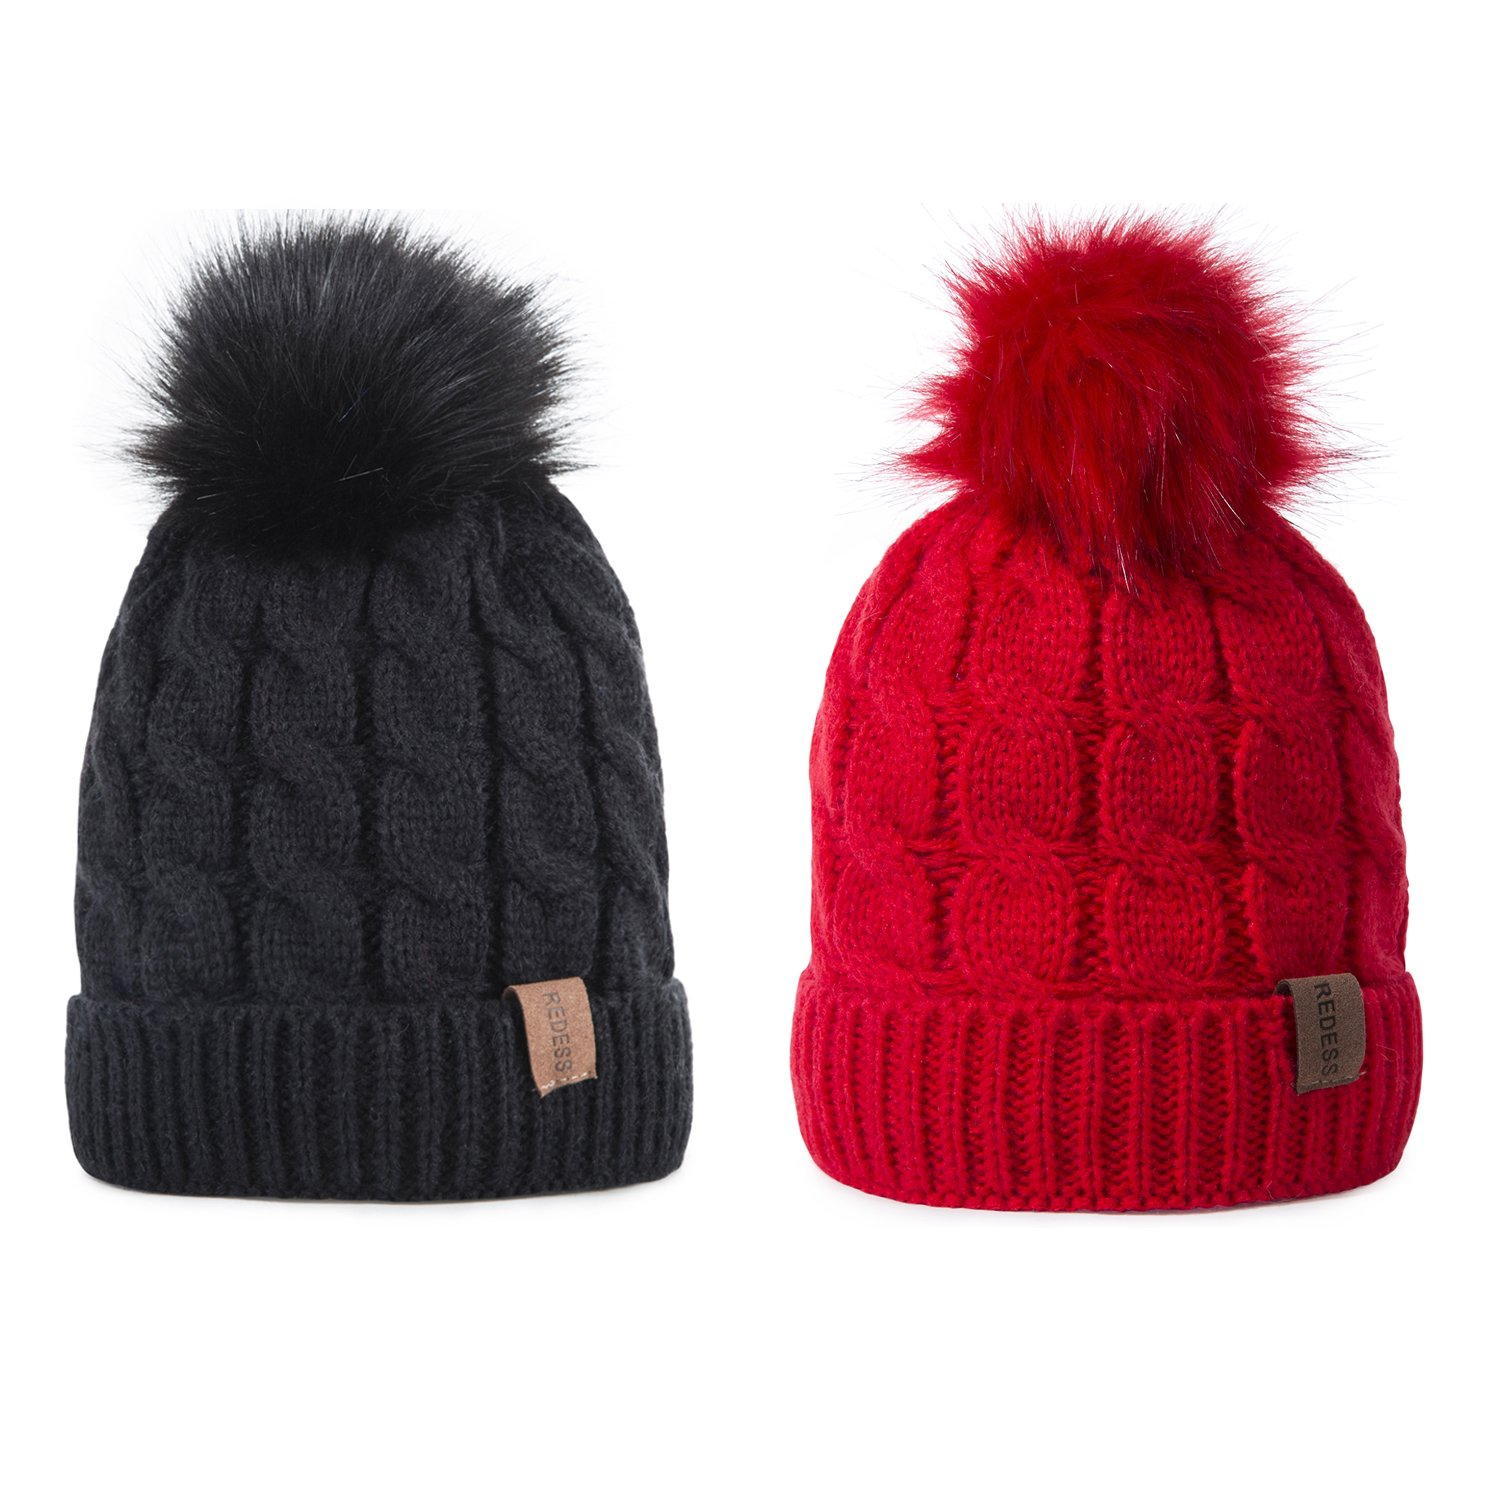 Baby Toddler Childrens Beanie Pom Pom Knit Cap for Girls and Boys REDESS Kids Winter Warm Fleece Lined Hat